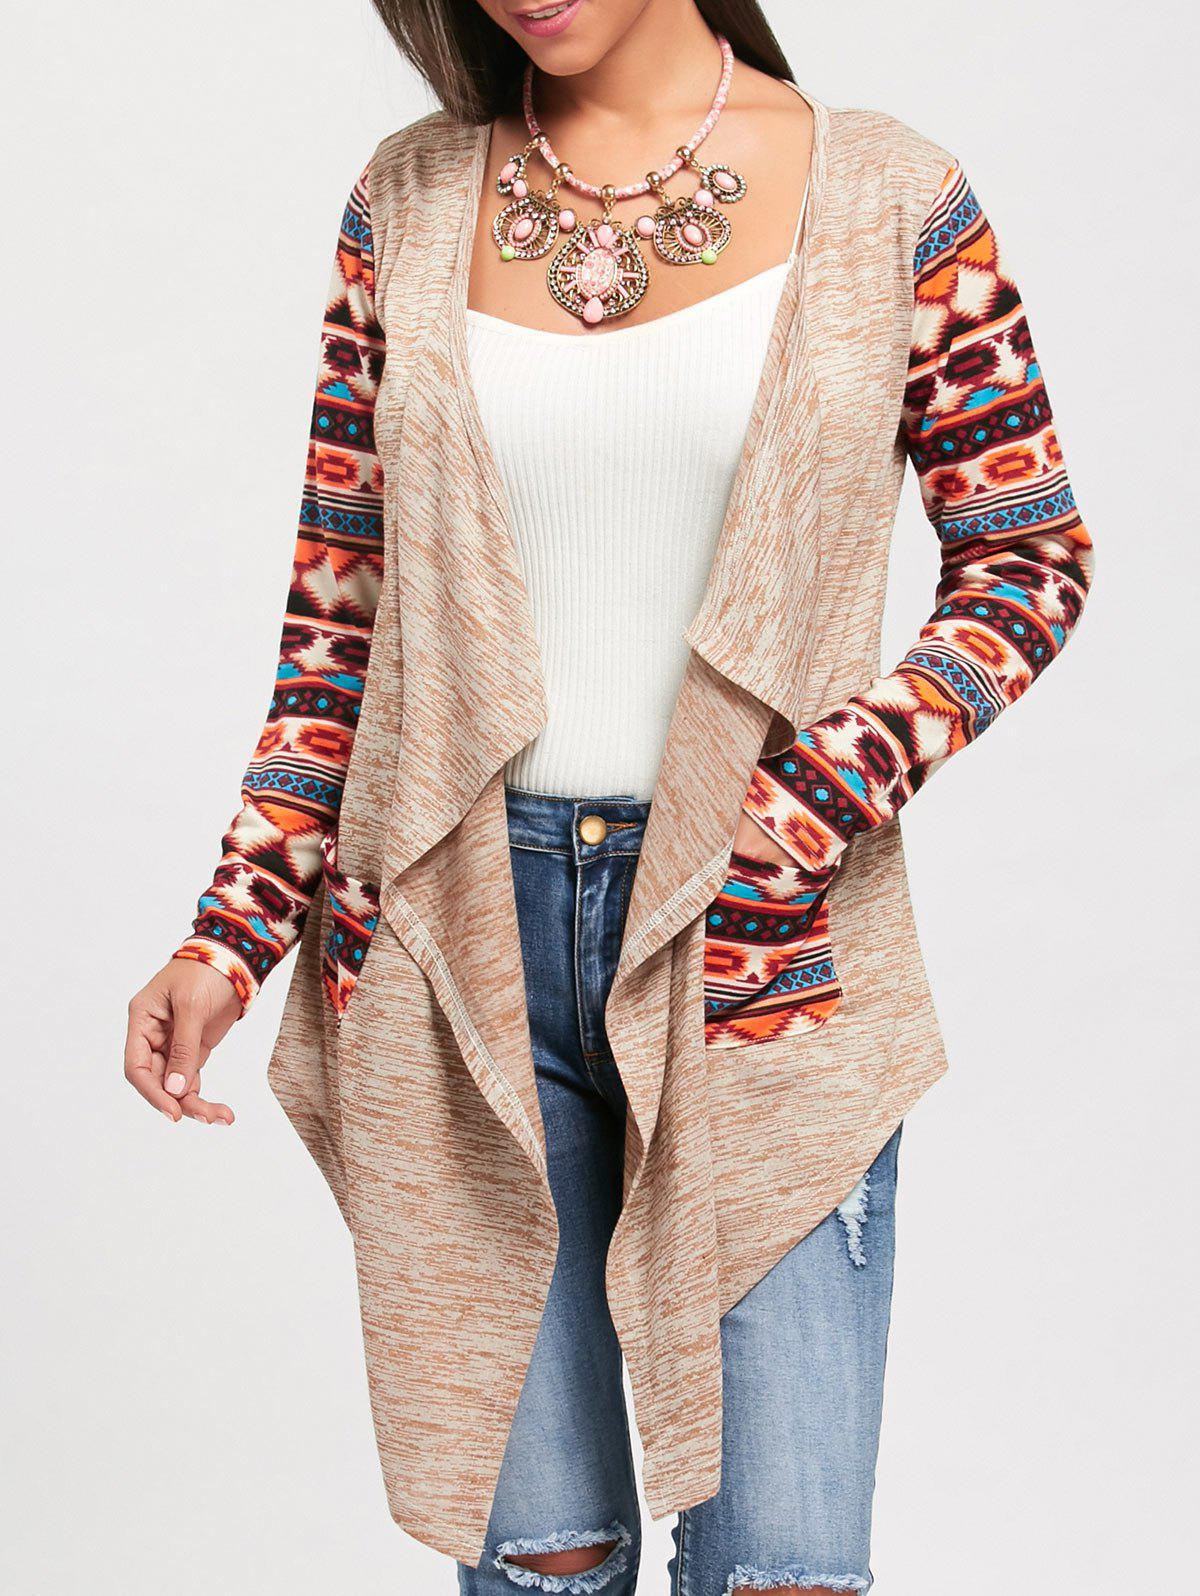 Ethnic Print Long Sleeve Draped CardiganWOMEN<br><br>Size: L; Color: COLORMIX; Type: Cardigans; Material: Polyester,Spandex; Sleeve Length: Full; Collar: Collarless; Style: Casual; Pattern Type: Print; Season: Fall,Spring,Summer; Elasticity: Micro-elastic; Weight: 0.3000kg; Package Contents: 1 x Cardigan;